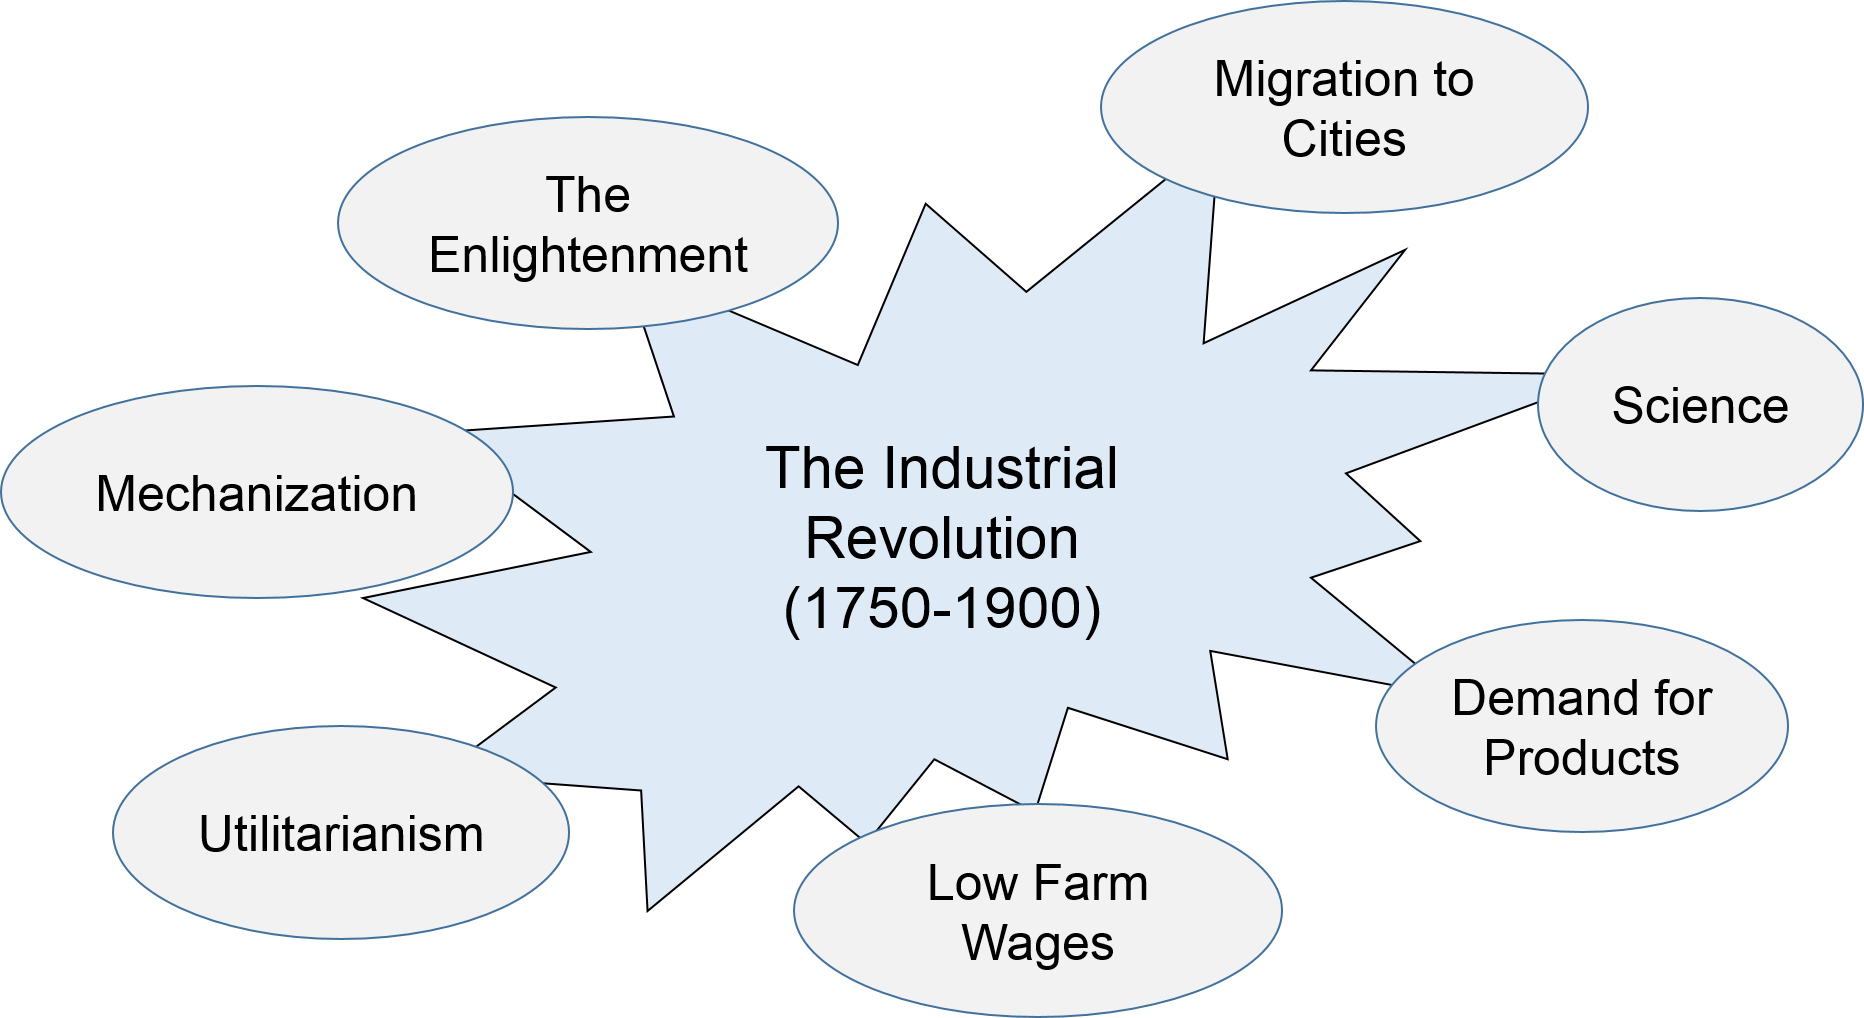 an introduction to the history of the industrial revolution An overview of the causes of the industrial revolution, early effects, key  inventions, and why britain was first to industrialize.